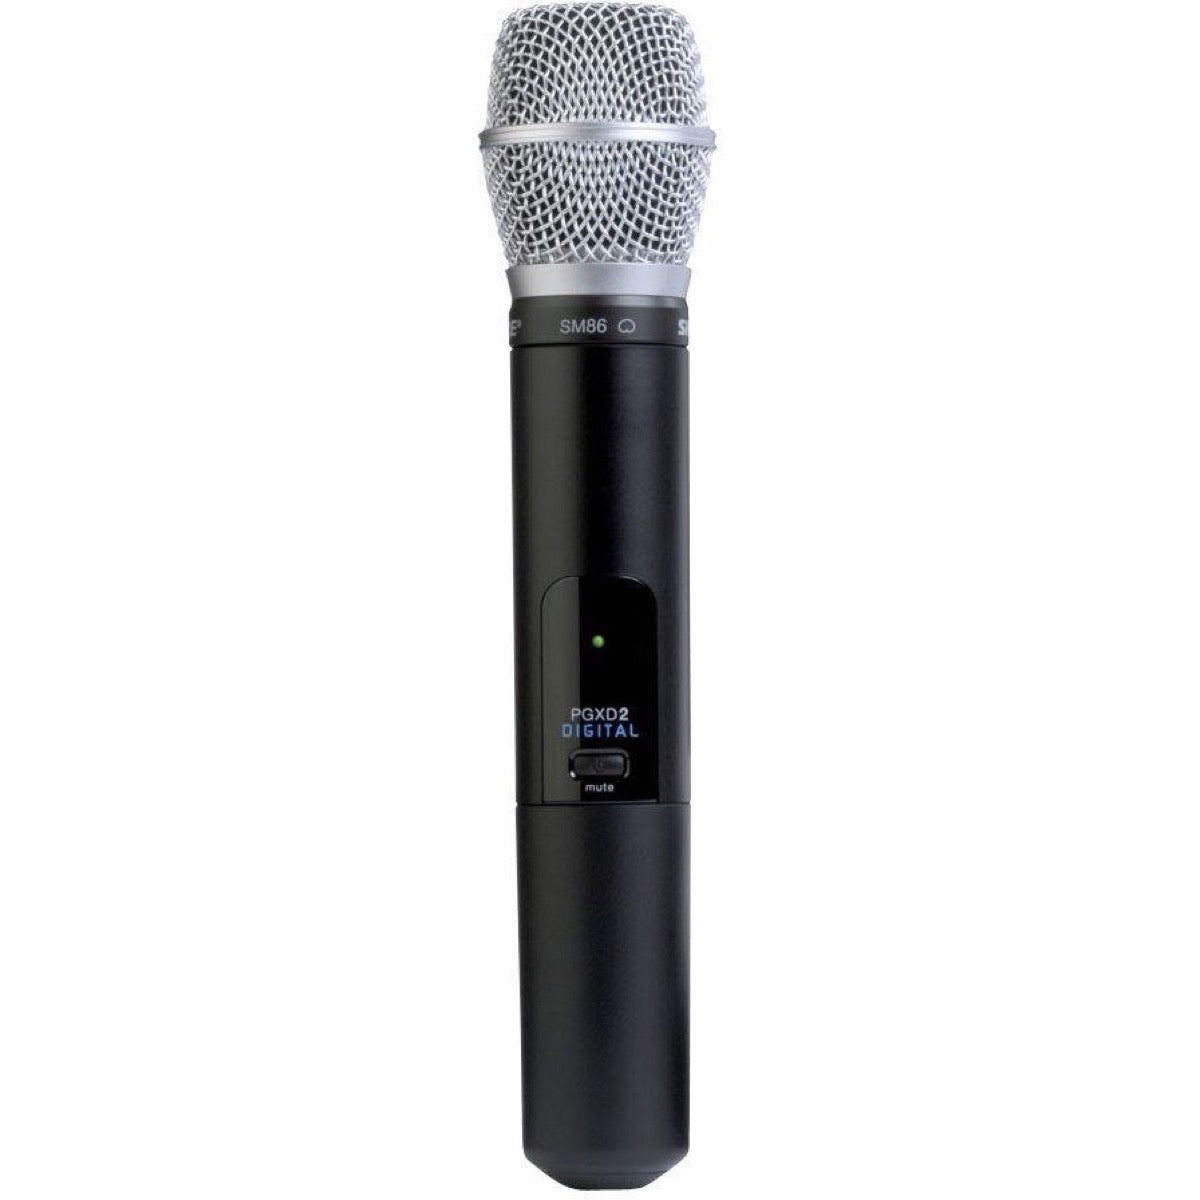 Shure PGXD2 SM86 Digital Handheld Wireless Microphone Transmitter, Band X8 (902 - 928 MHz)